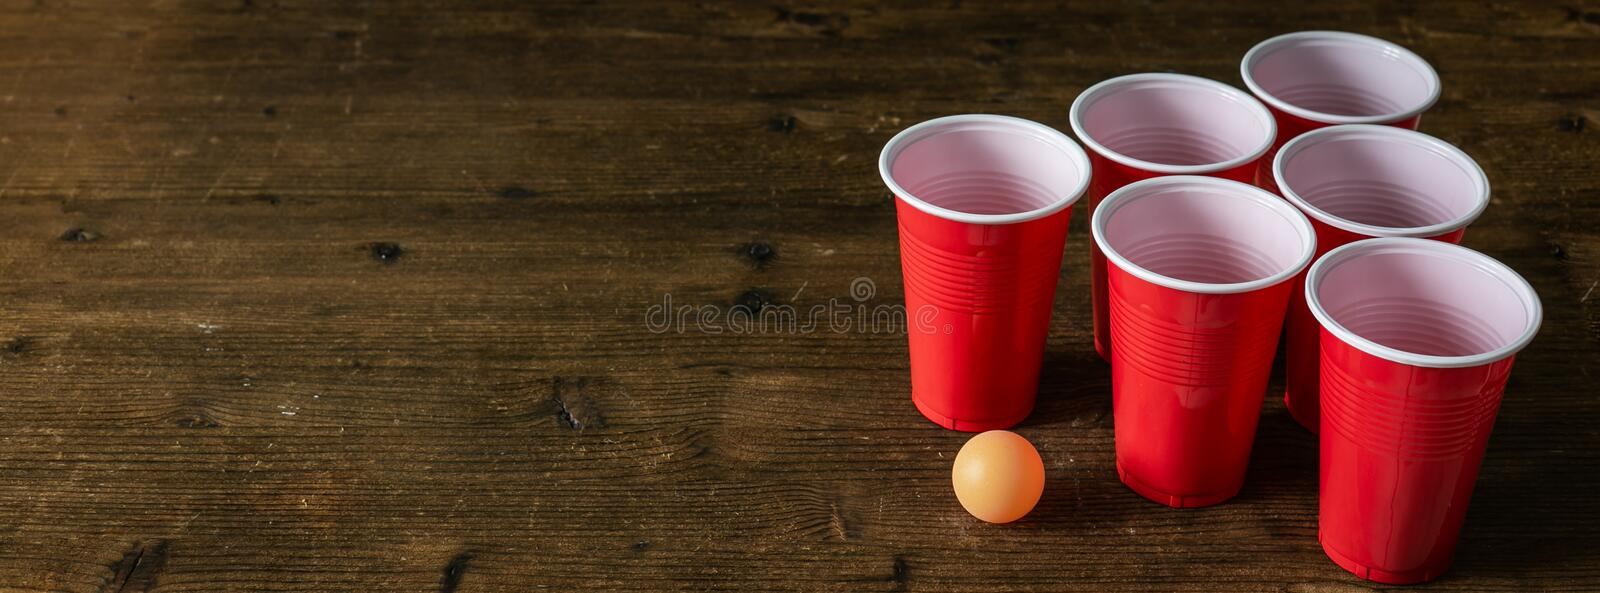 College party sport - beer pong table setting royalty free stock photos